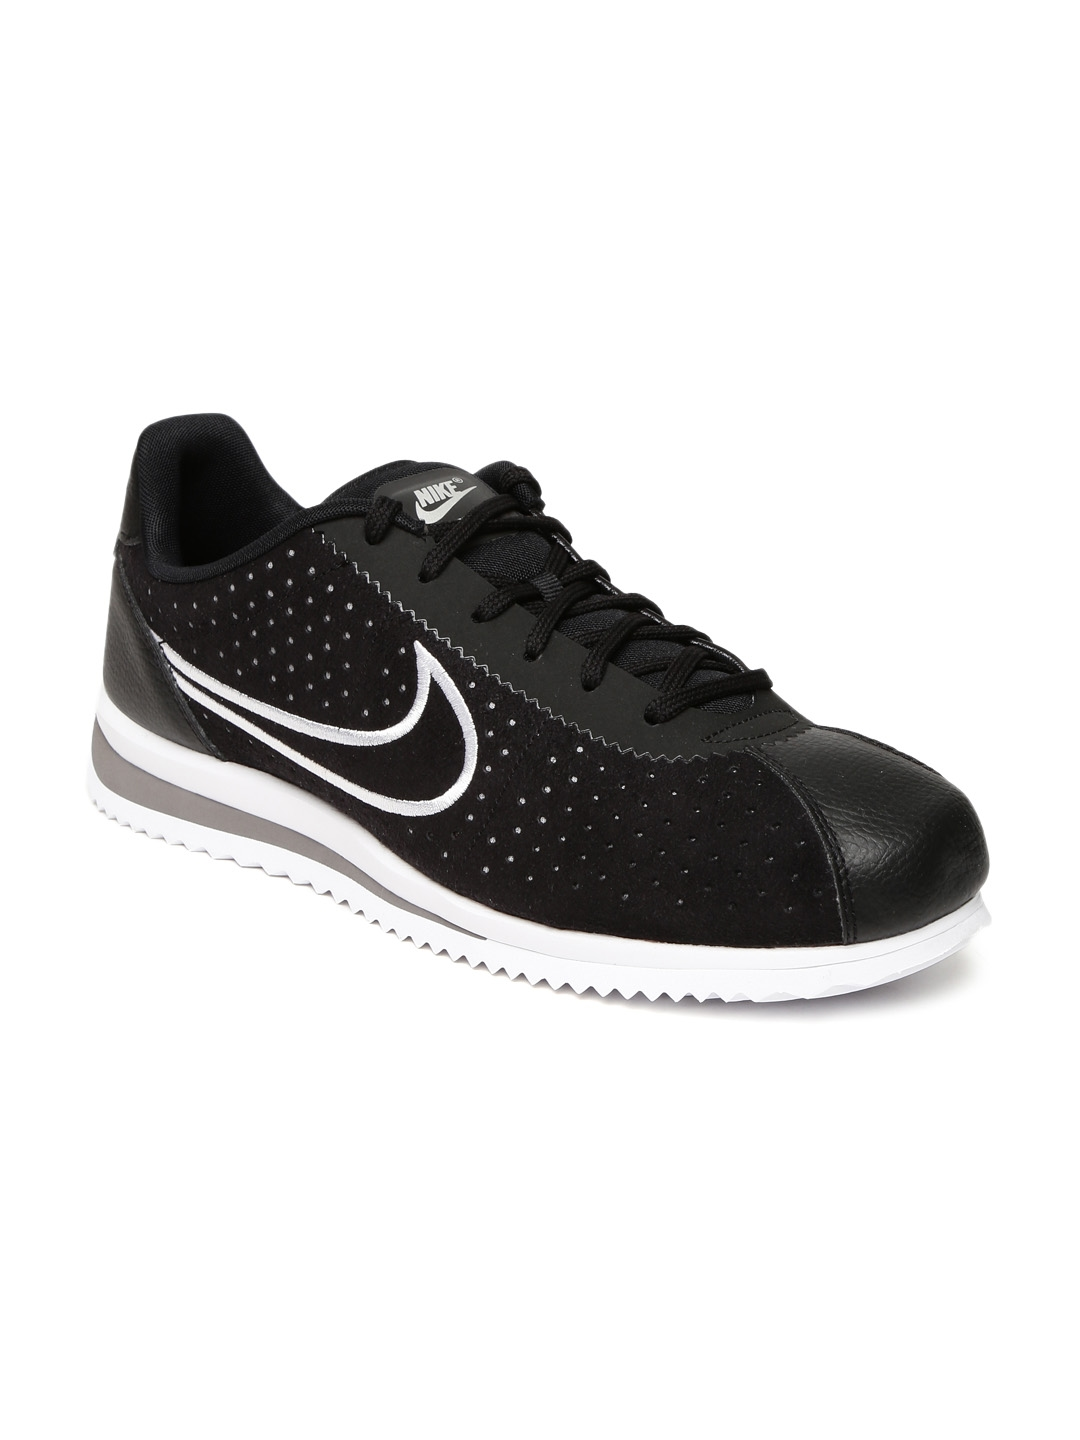 brand new 09ffa 6b9bb Buy Nike Men Black CORTEZ ULTRA MOIRE 2 Sneakers - Casual Shoes for ...